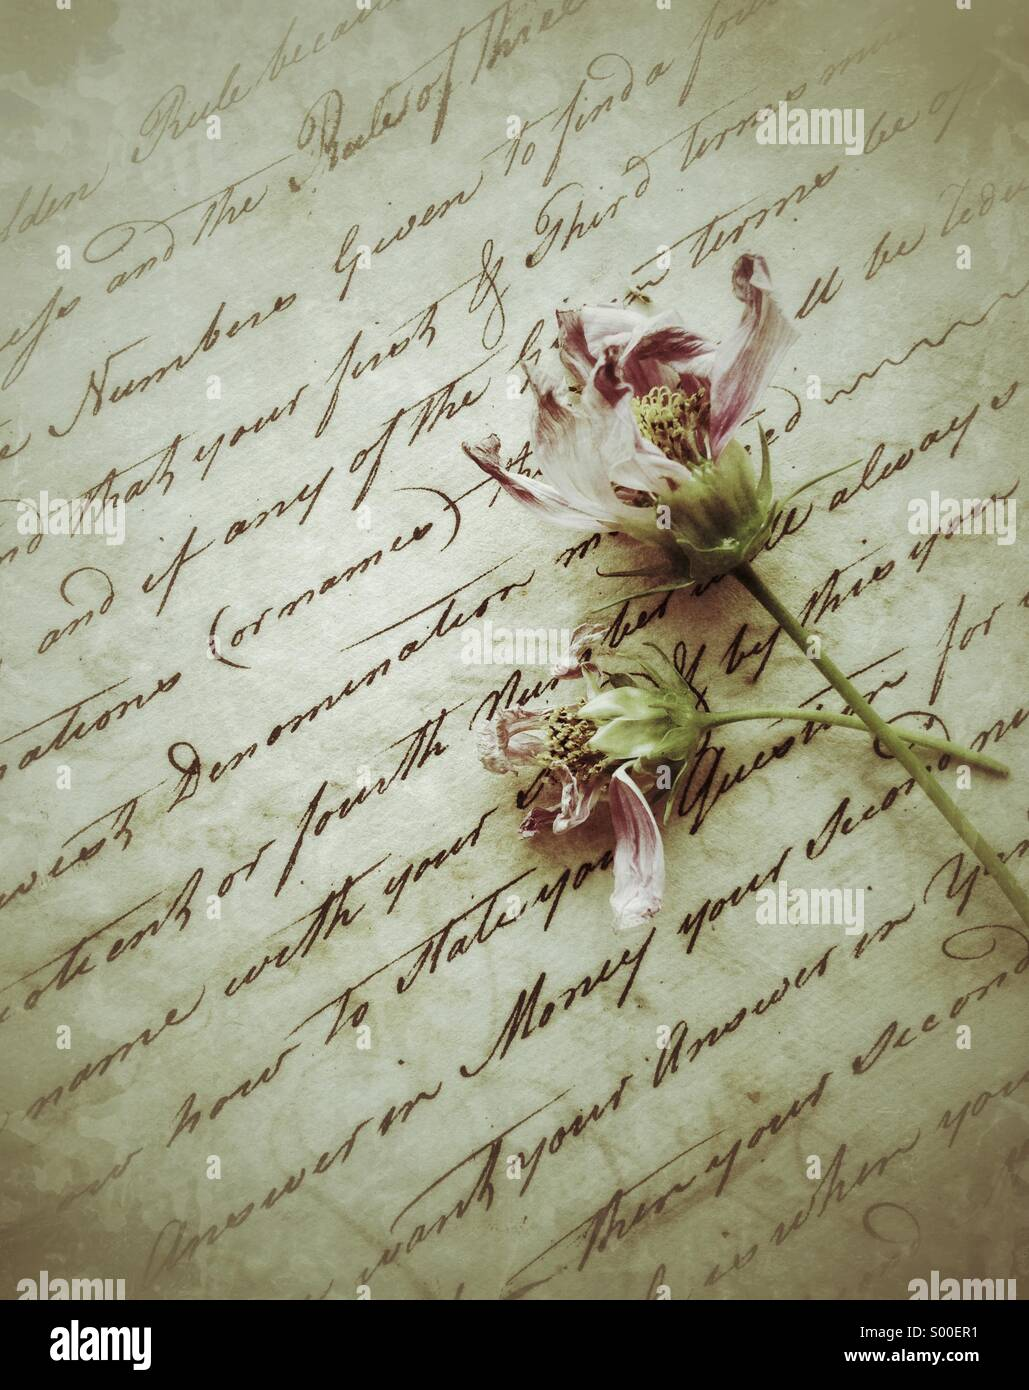 Faded cosmos flowers on old script - Stock Image